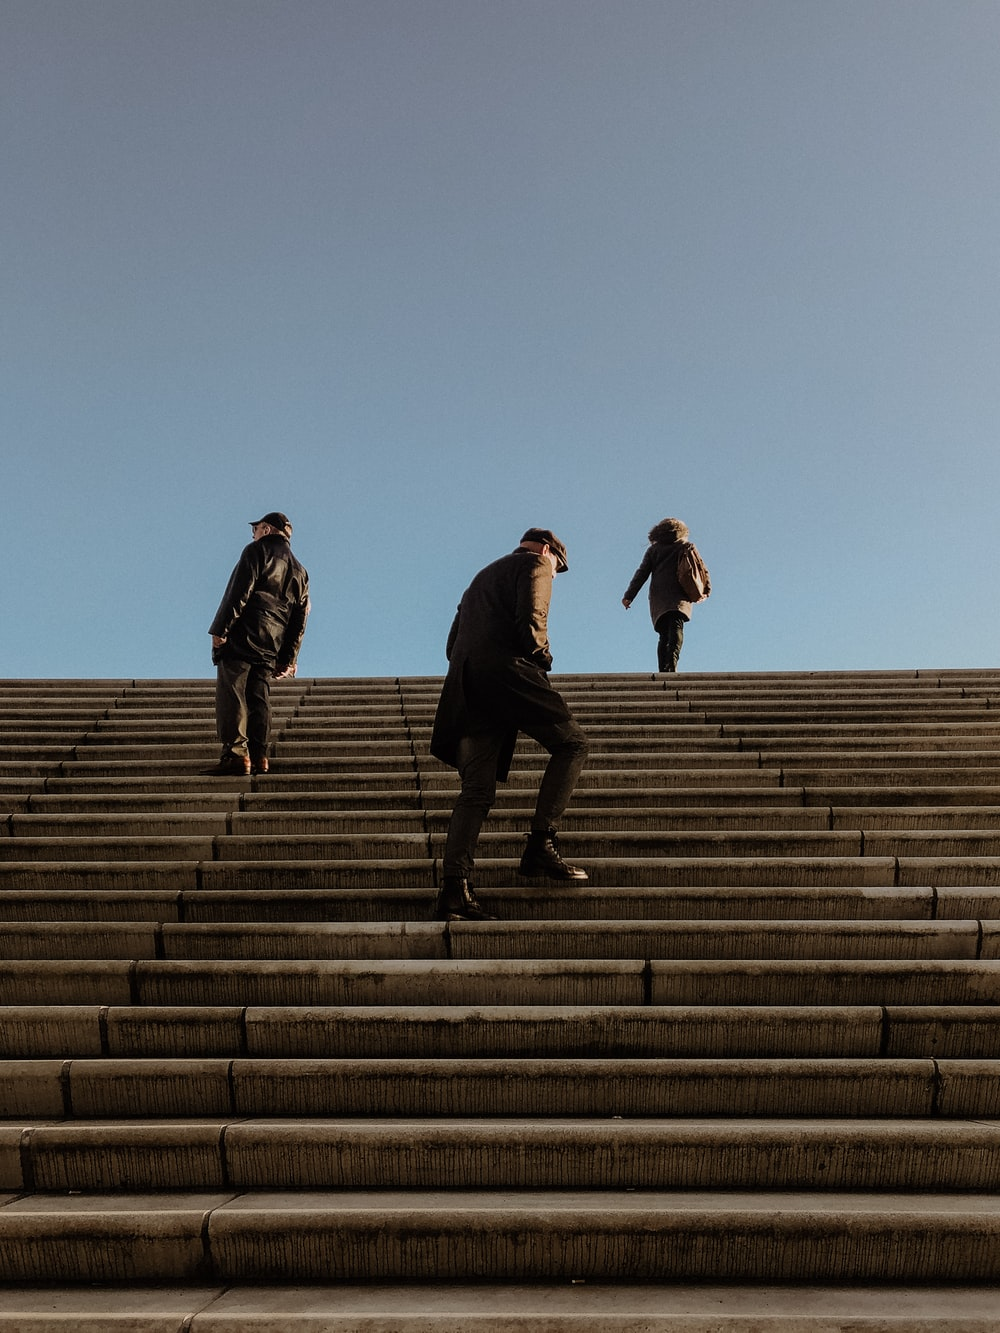 low angle photo of people walking on stairways